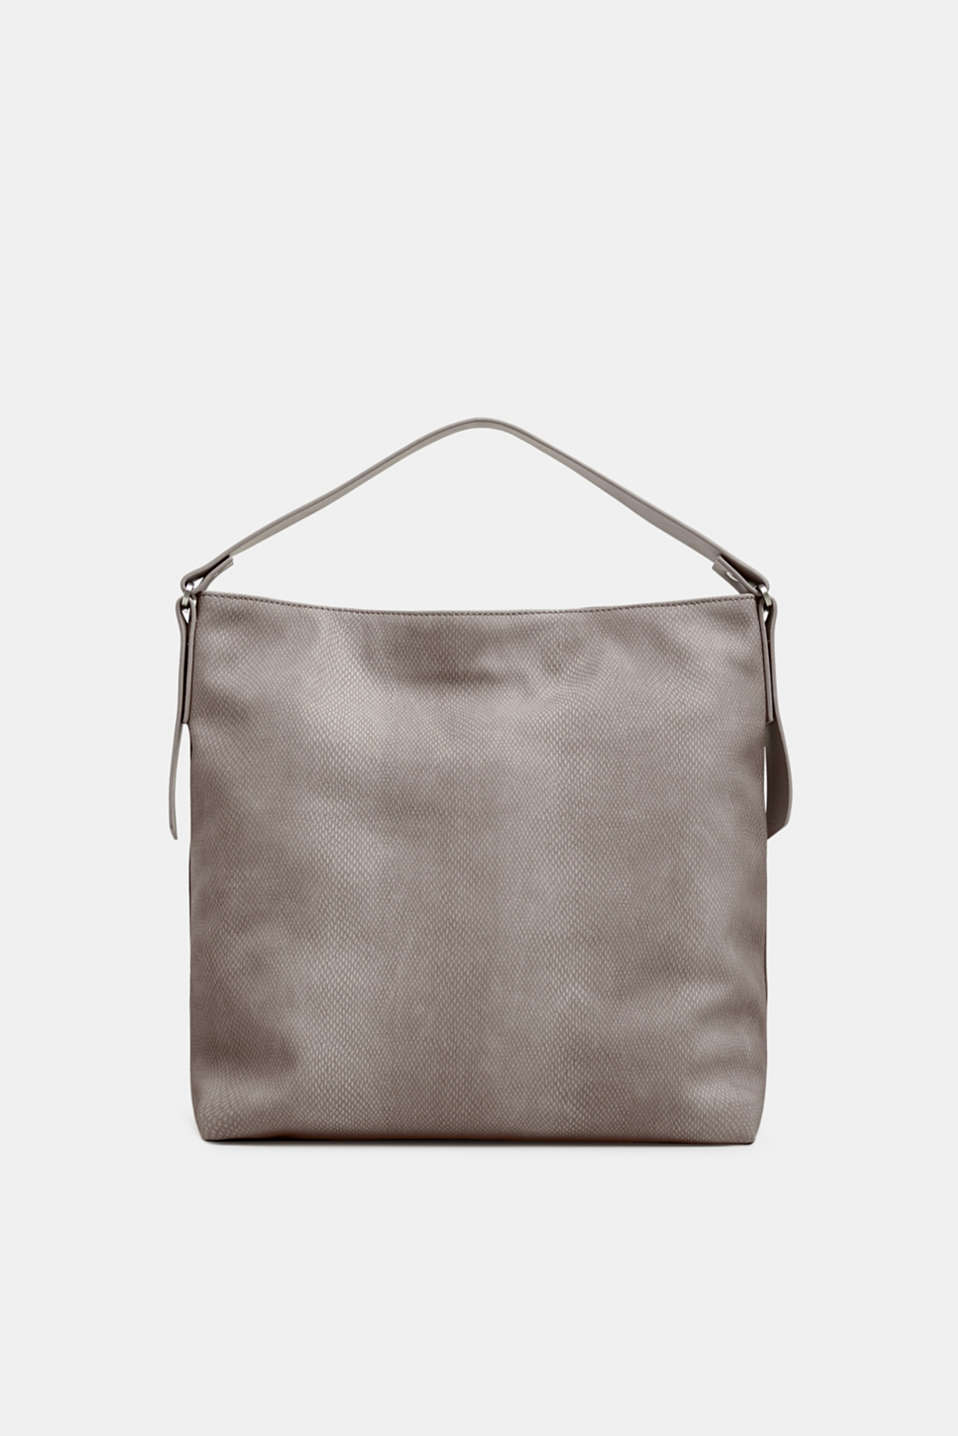 Esprit - Hobo Bag in Schlangen-Optik